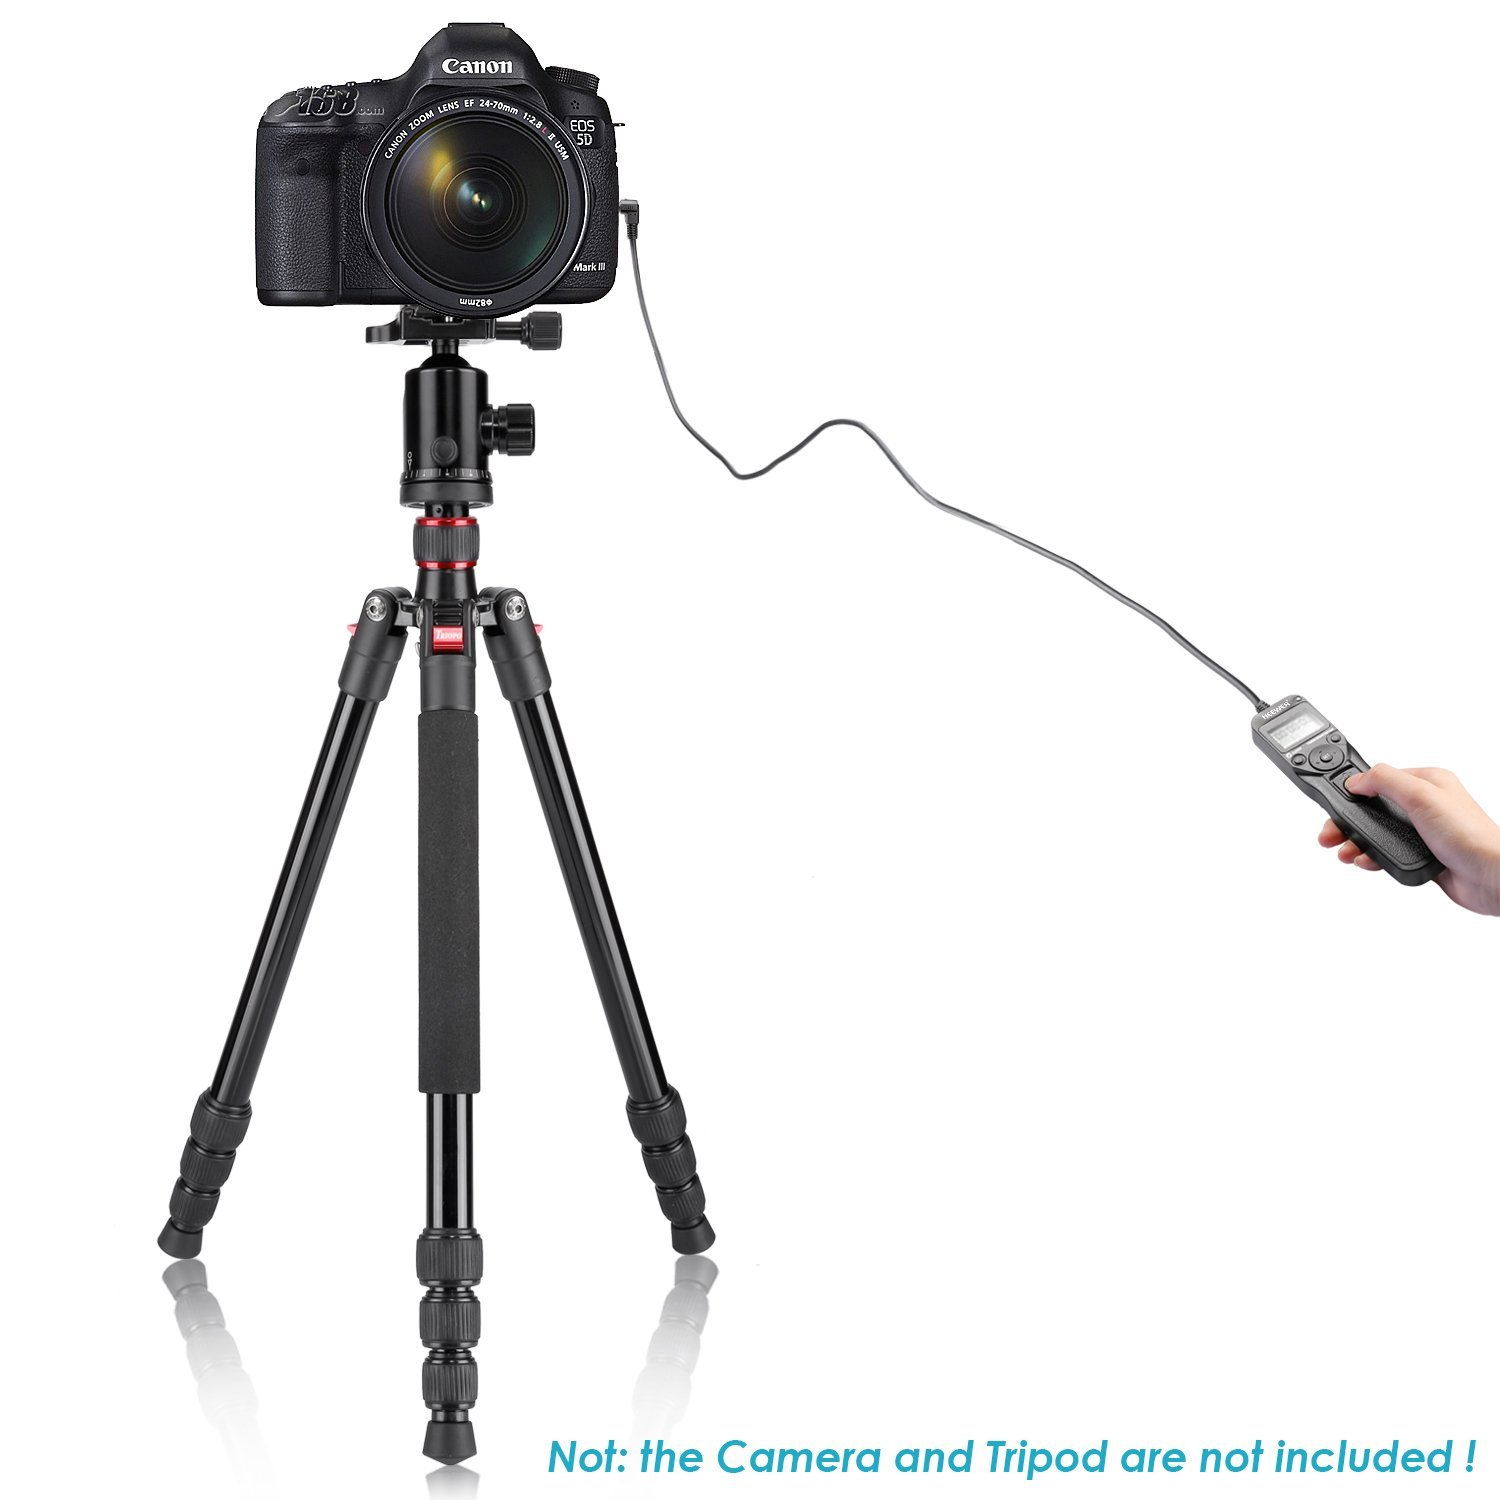 Neewer LCD Timer Shutter Release Remote Control for Canon 700D/T5i, 650D/T4i, 550D/T2i, 500D/T1i, 350D/XT, 400D/XTi, 1000D/XS, 450D/XSi, 60D, 100D, and Pentax by Neewer (Image #2)